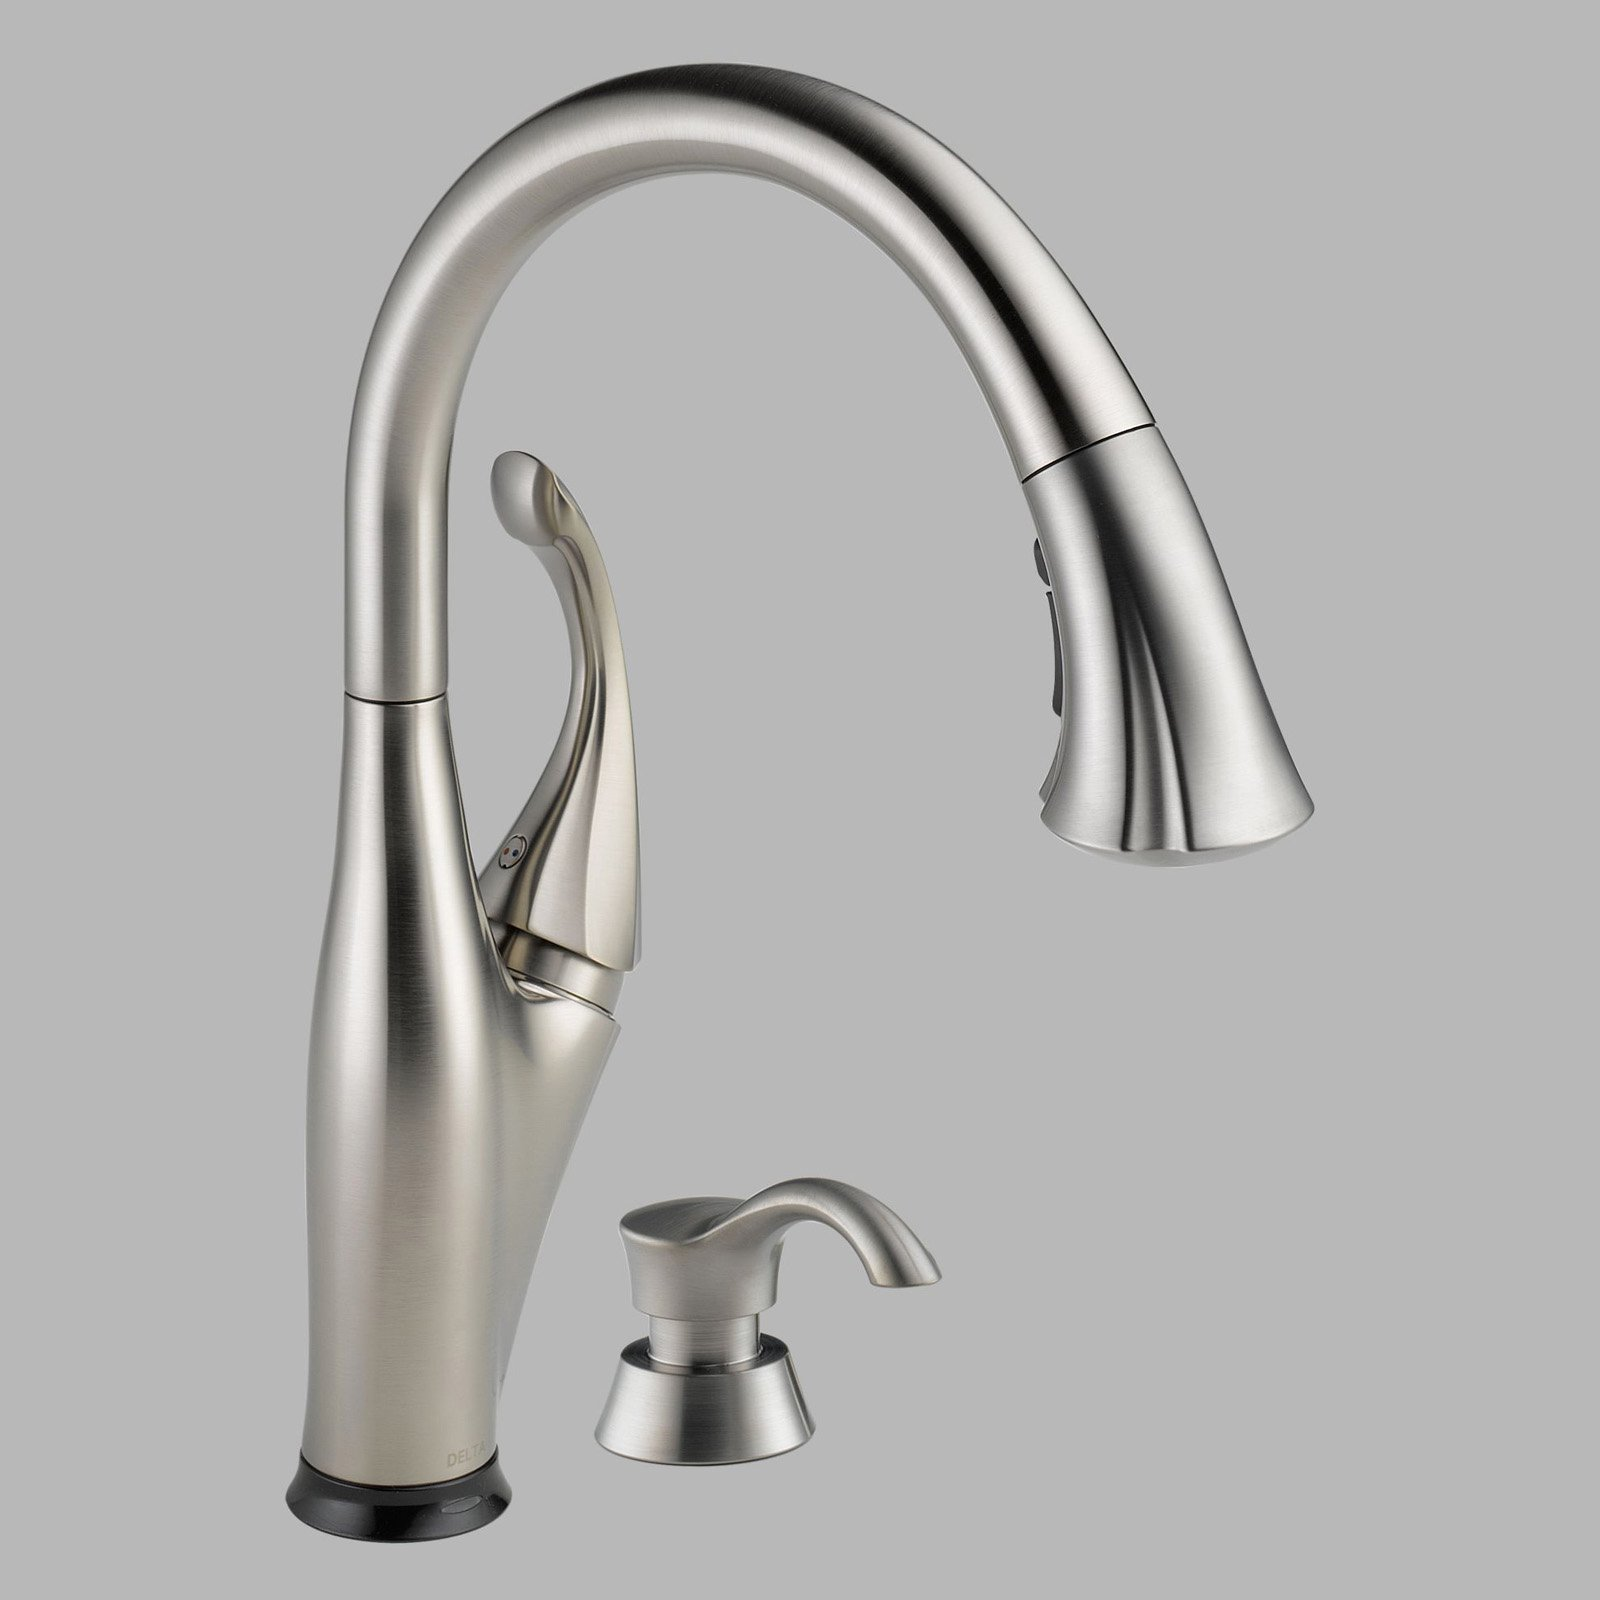 Delta Addison Kitchen Faucet With Pullout Spray, Available In Various Colors